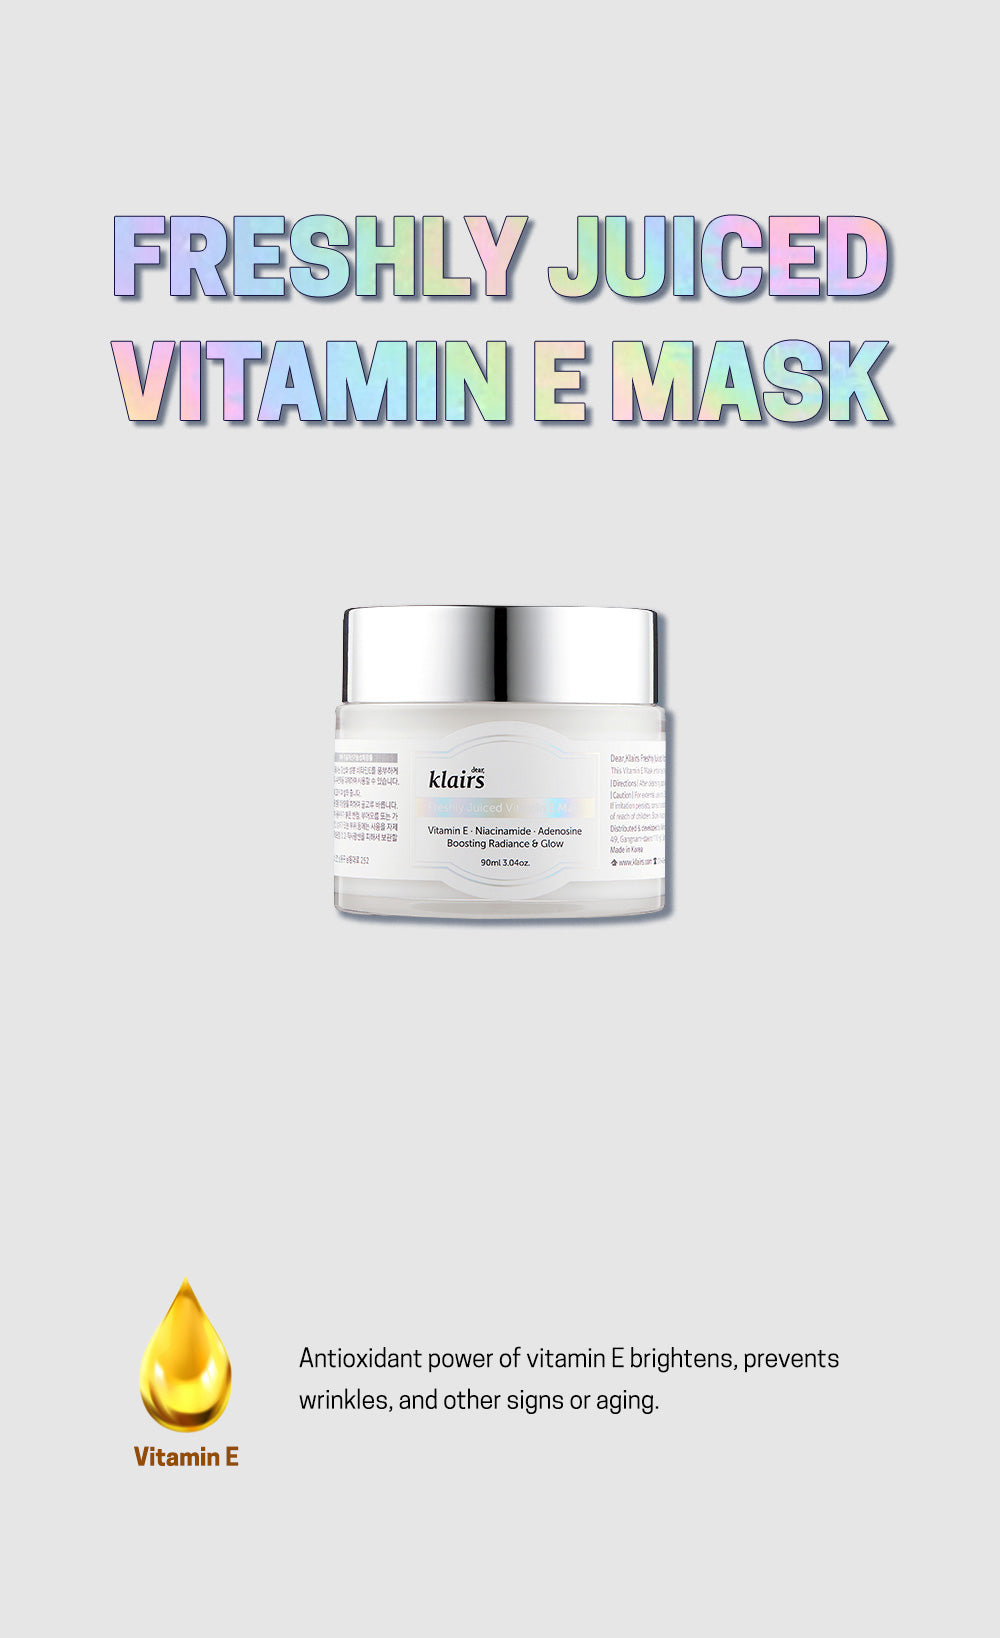 freshlyjuicedvitaminemask-1